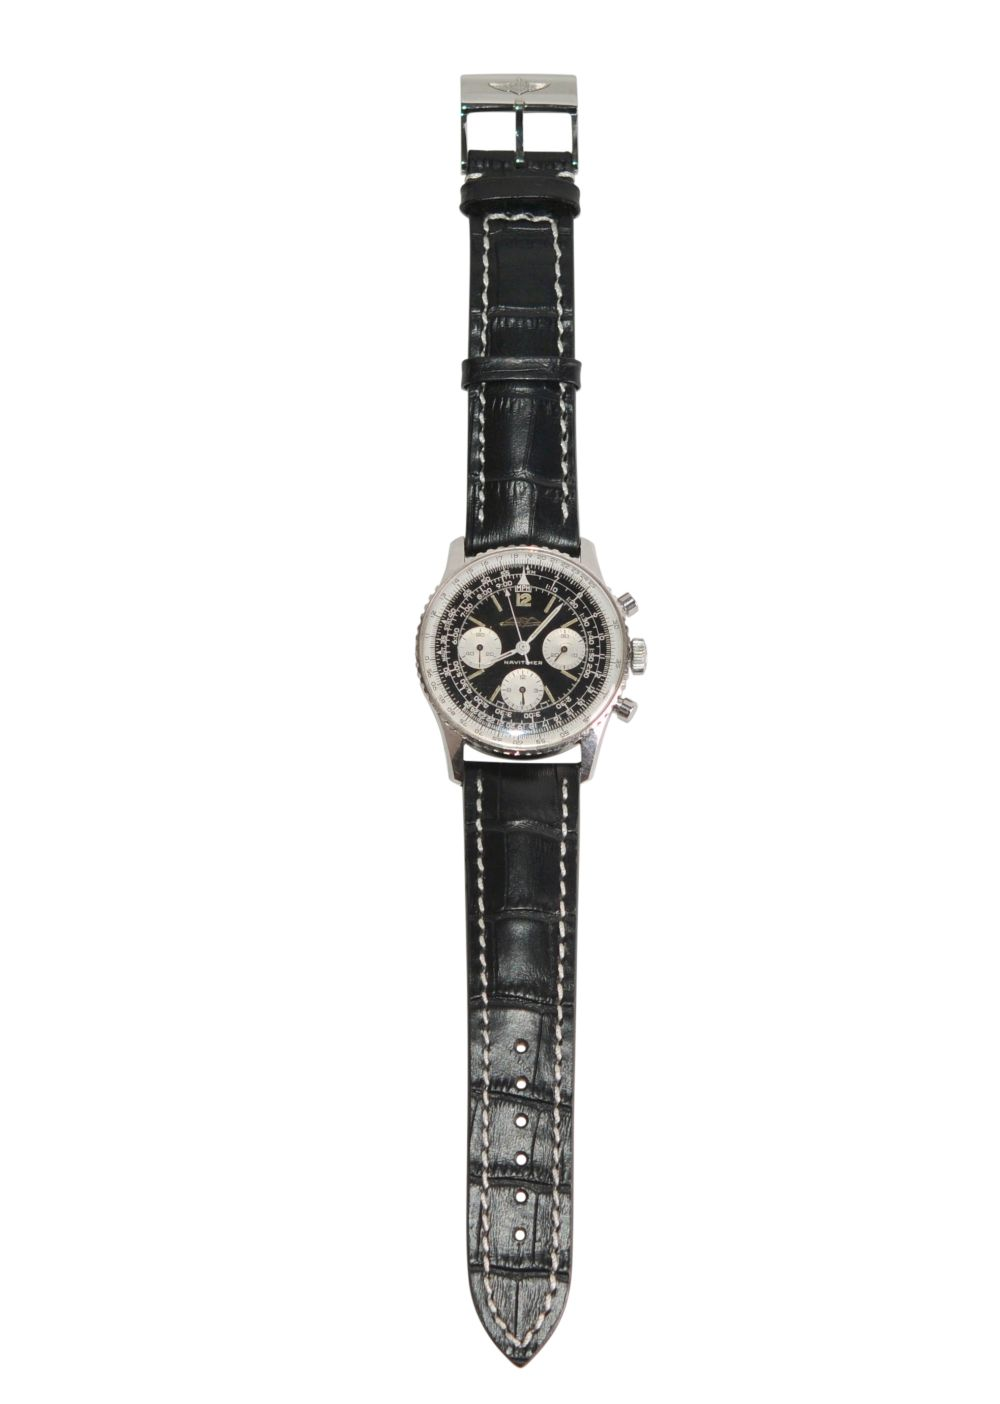 #22 Navitimer one of the first | Navitimer einer der ersten Image